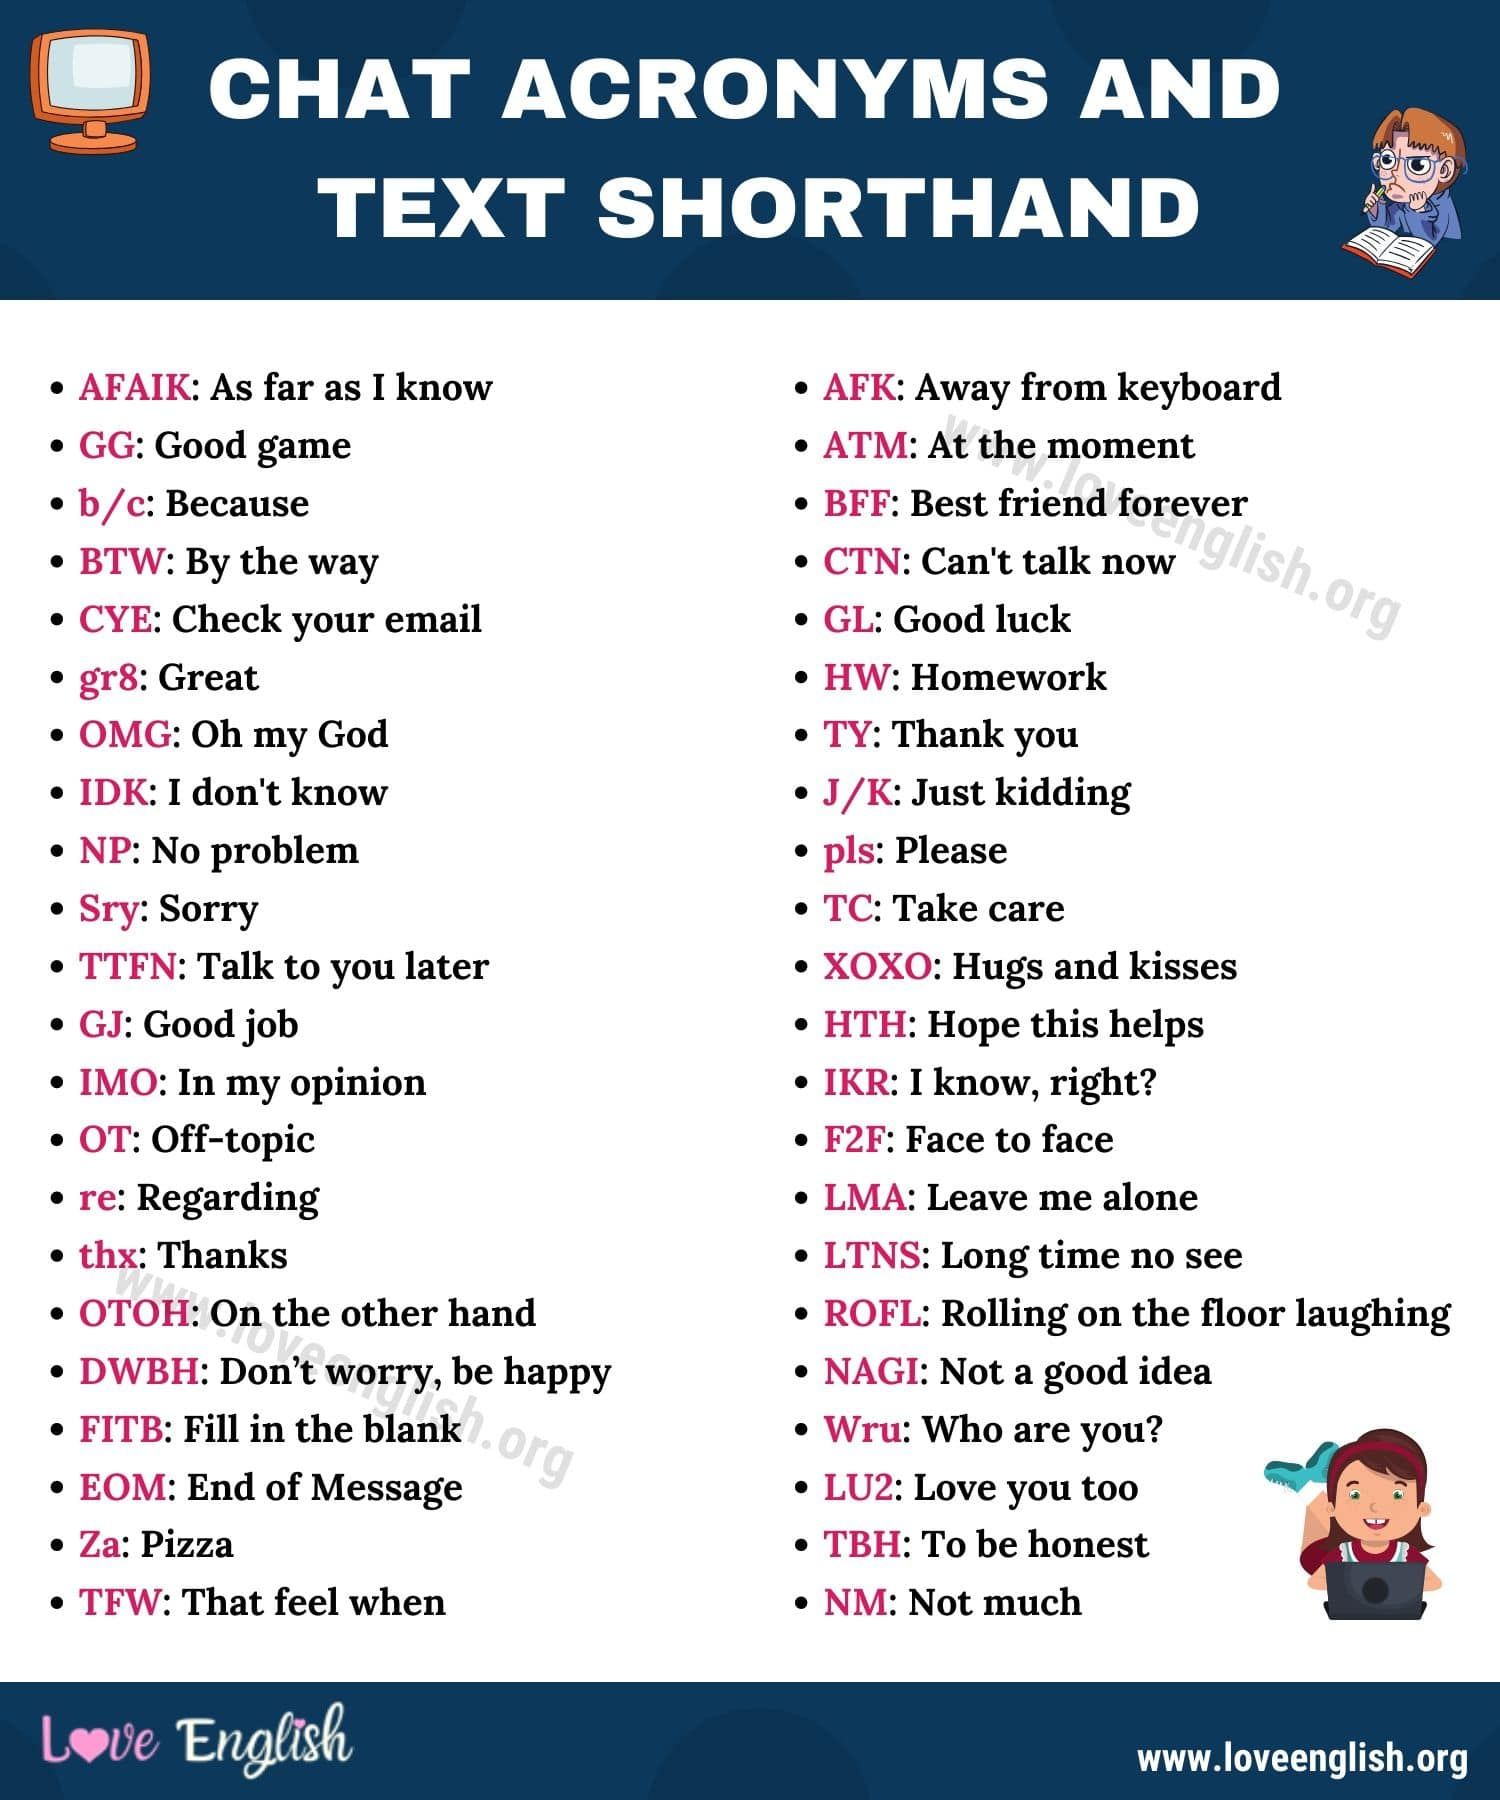 Chat Acronyms and Text Shorthand